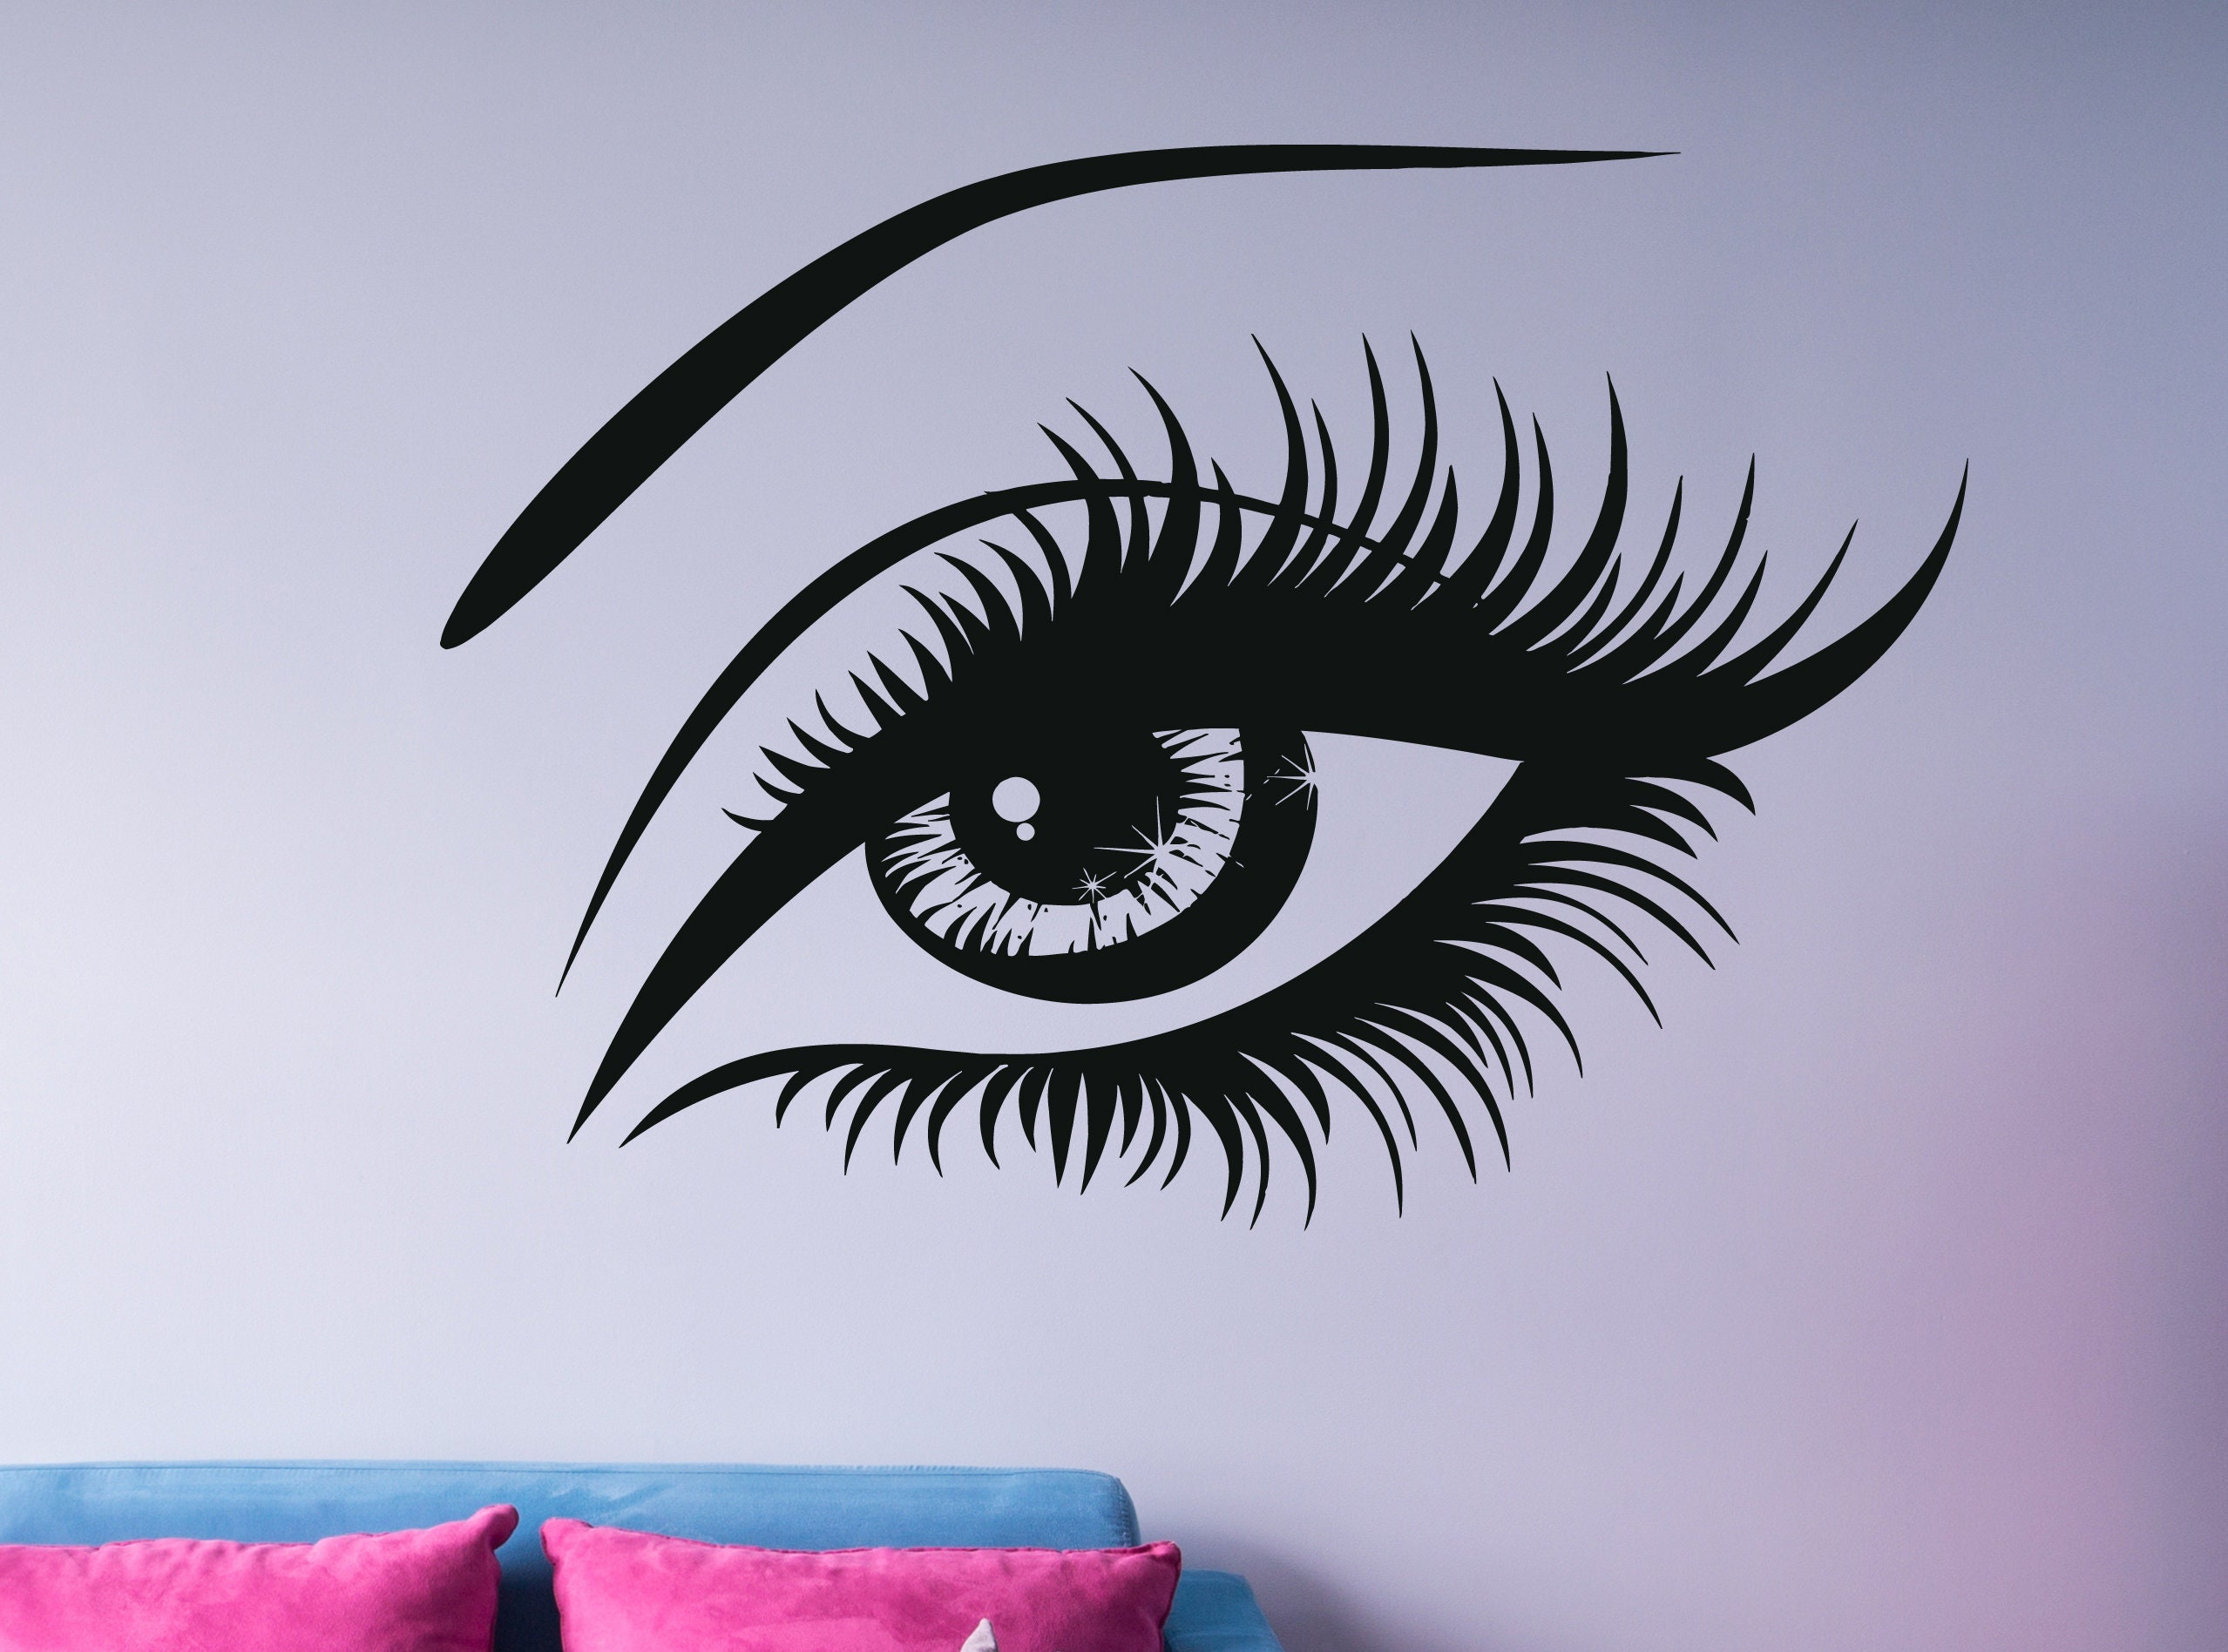 Eyelashes Wall Decals Girl Eye Decal Eyes Brows Decal Beauty Salon Decor Eyelashes Extensions Decal Fashion Decal Trending Art Nm083